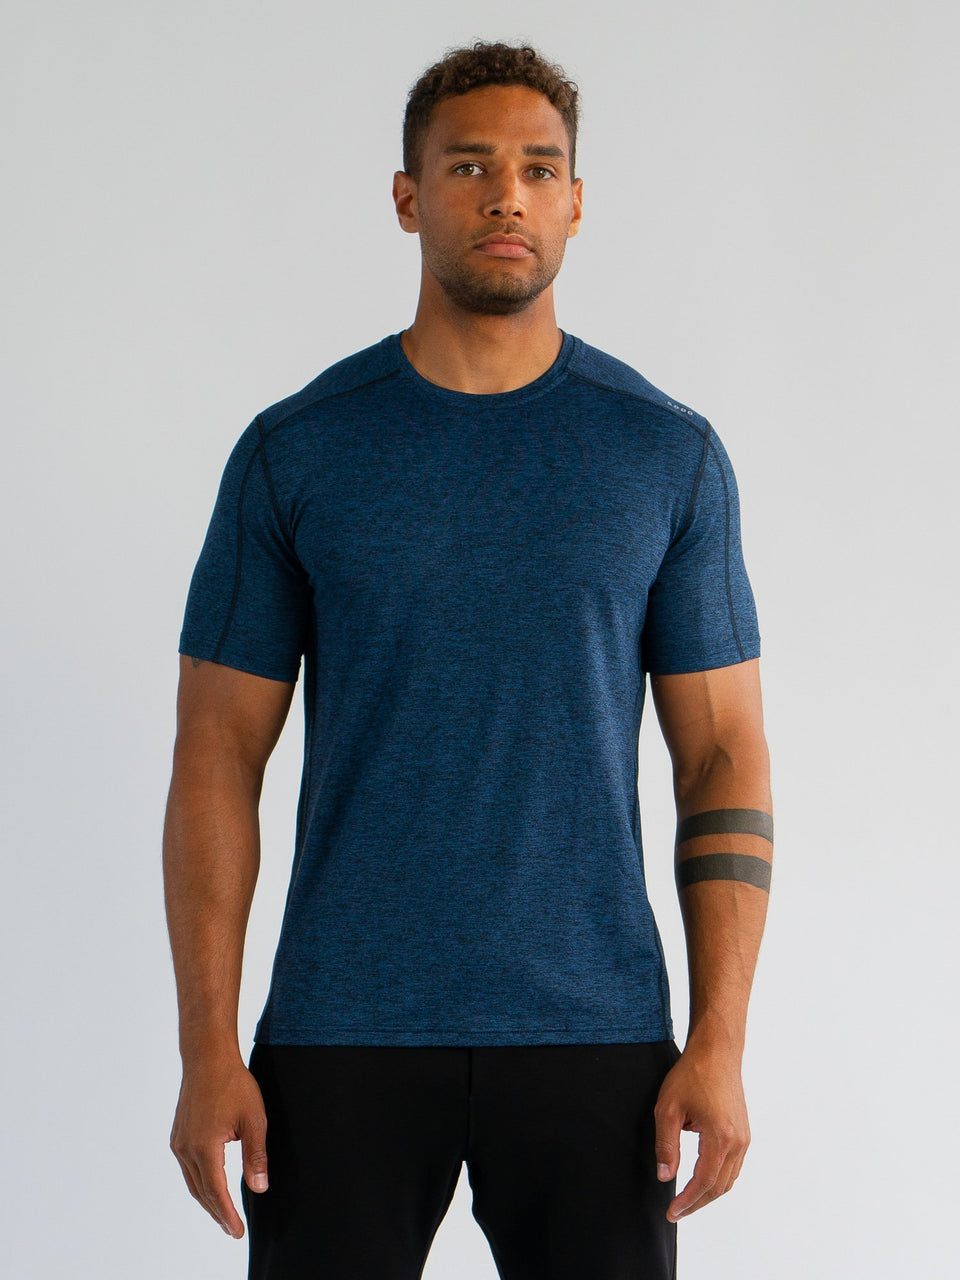 SS Cooldown - SODO Apparel - SHIRTS